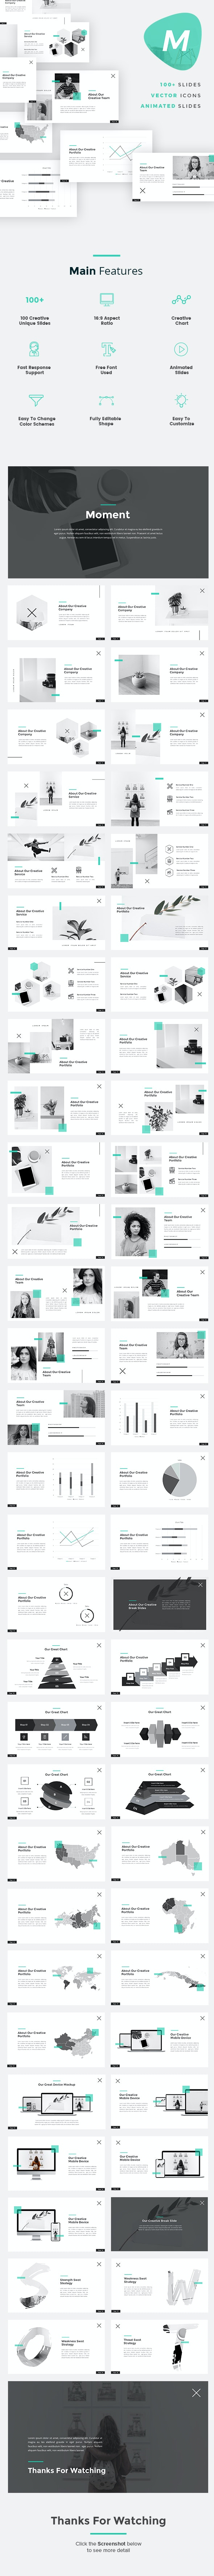 Moment - Minimalist PowerPoint Template - Creative PowerPoint Templates